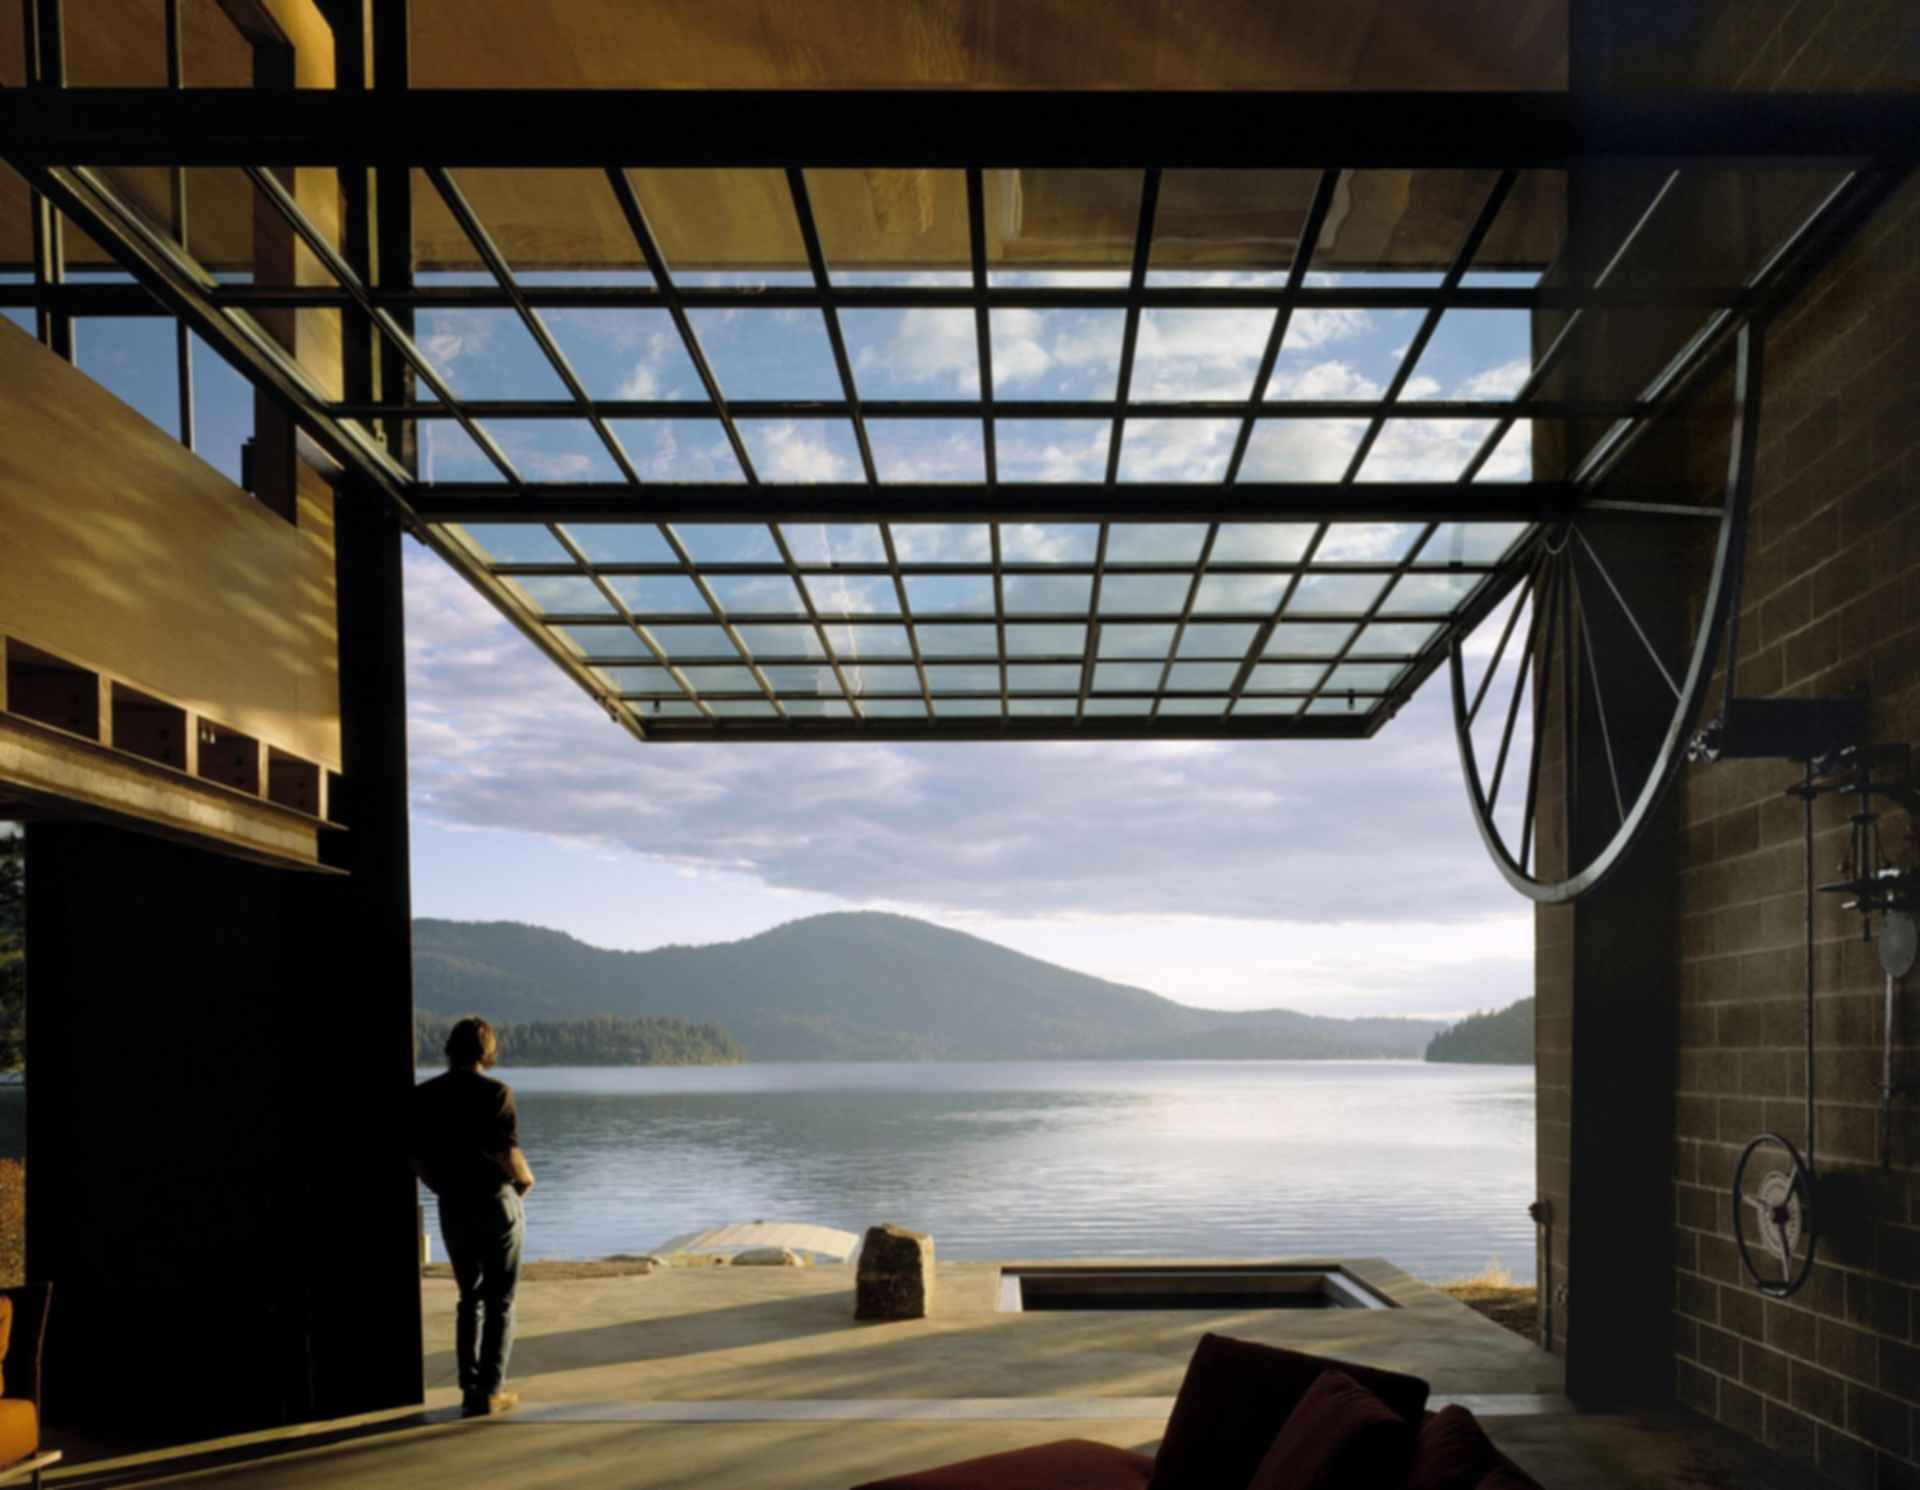 Chicken Point Cabin - Interior/View of the Lake